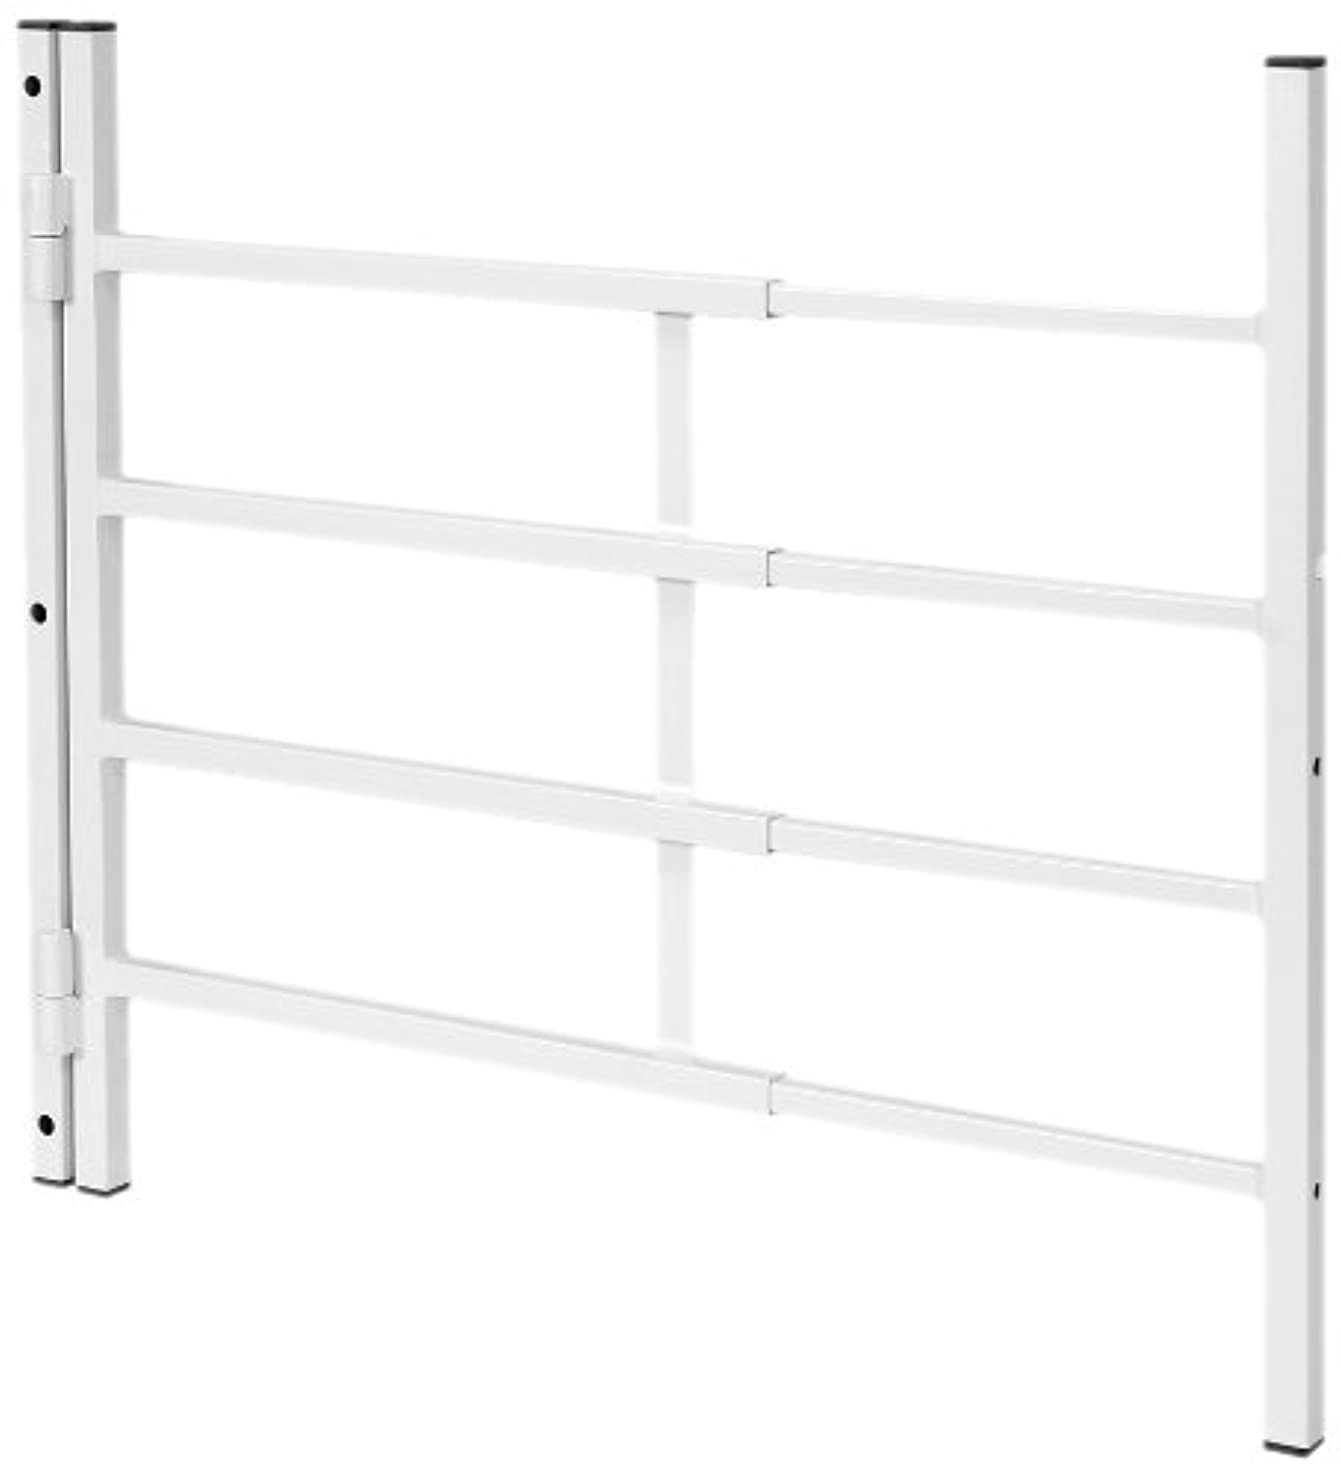 Defender Security SEGAL S 4772 Hinged Window Guard, 14-Inch - 22-Inch x 21-Inch, 4-Bar, Adjustable Width, EGRESS, Painted White, Pack of 1